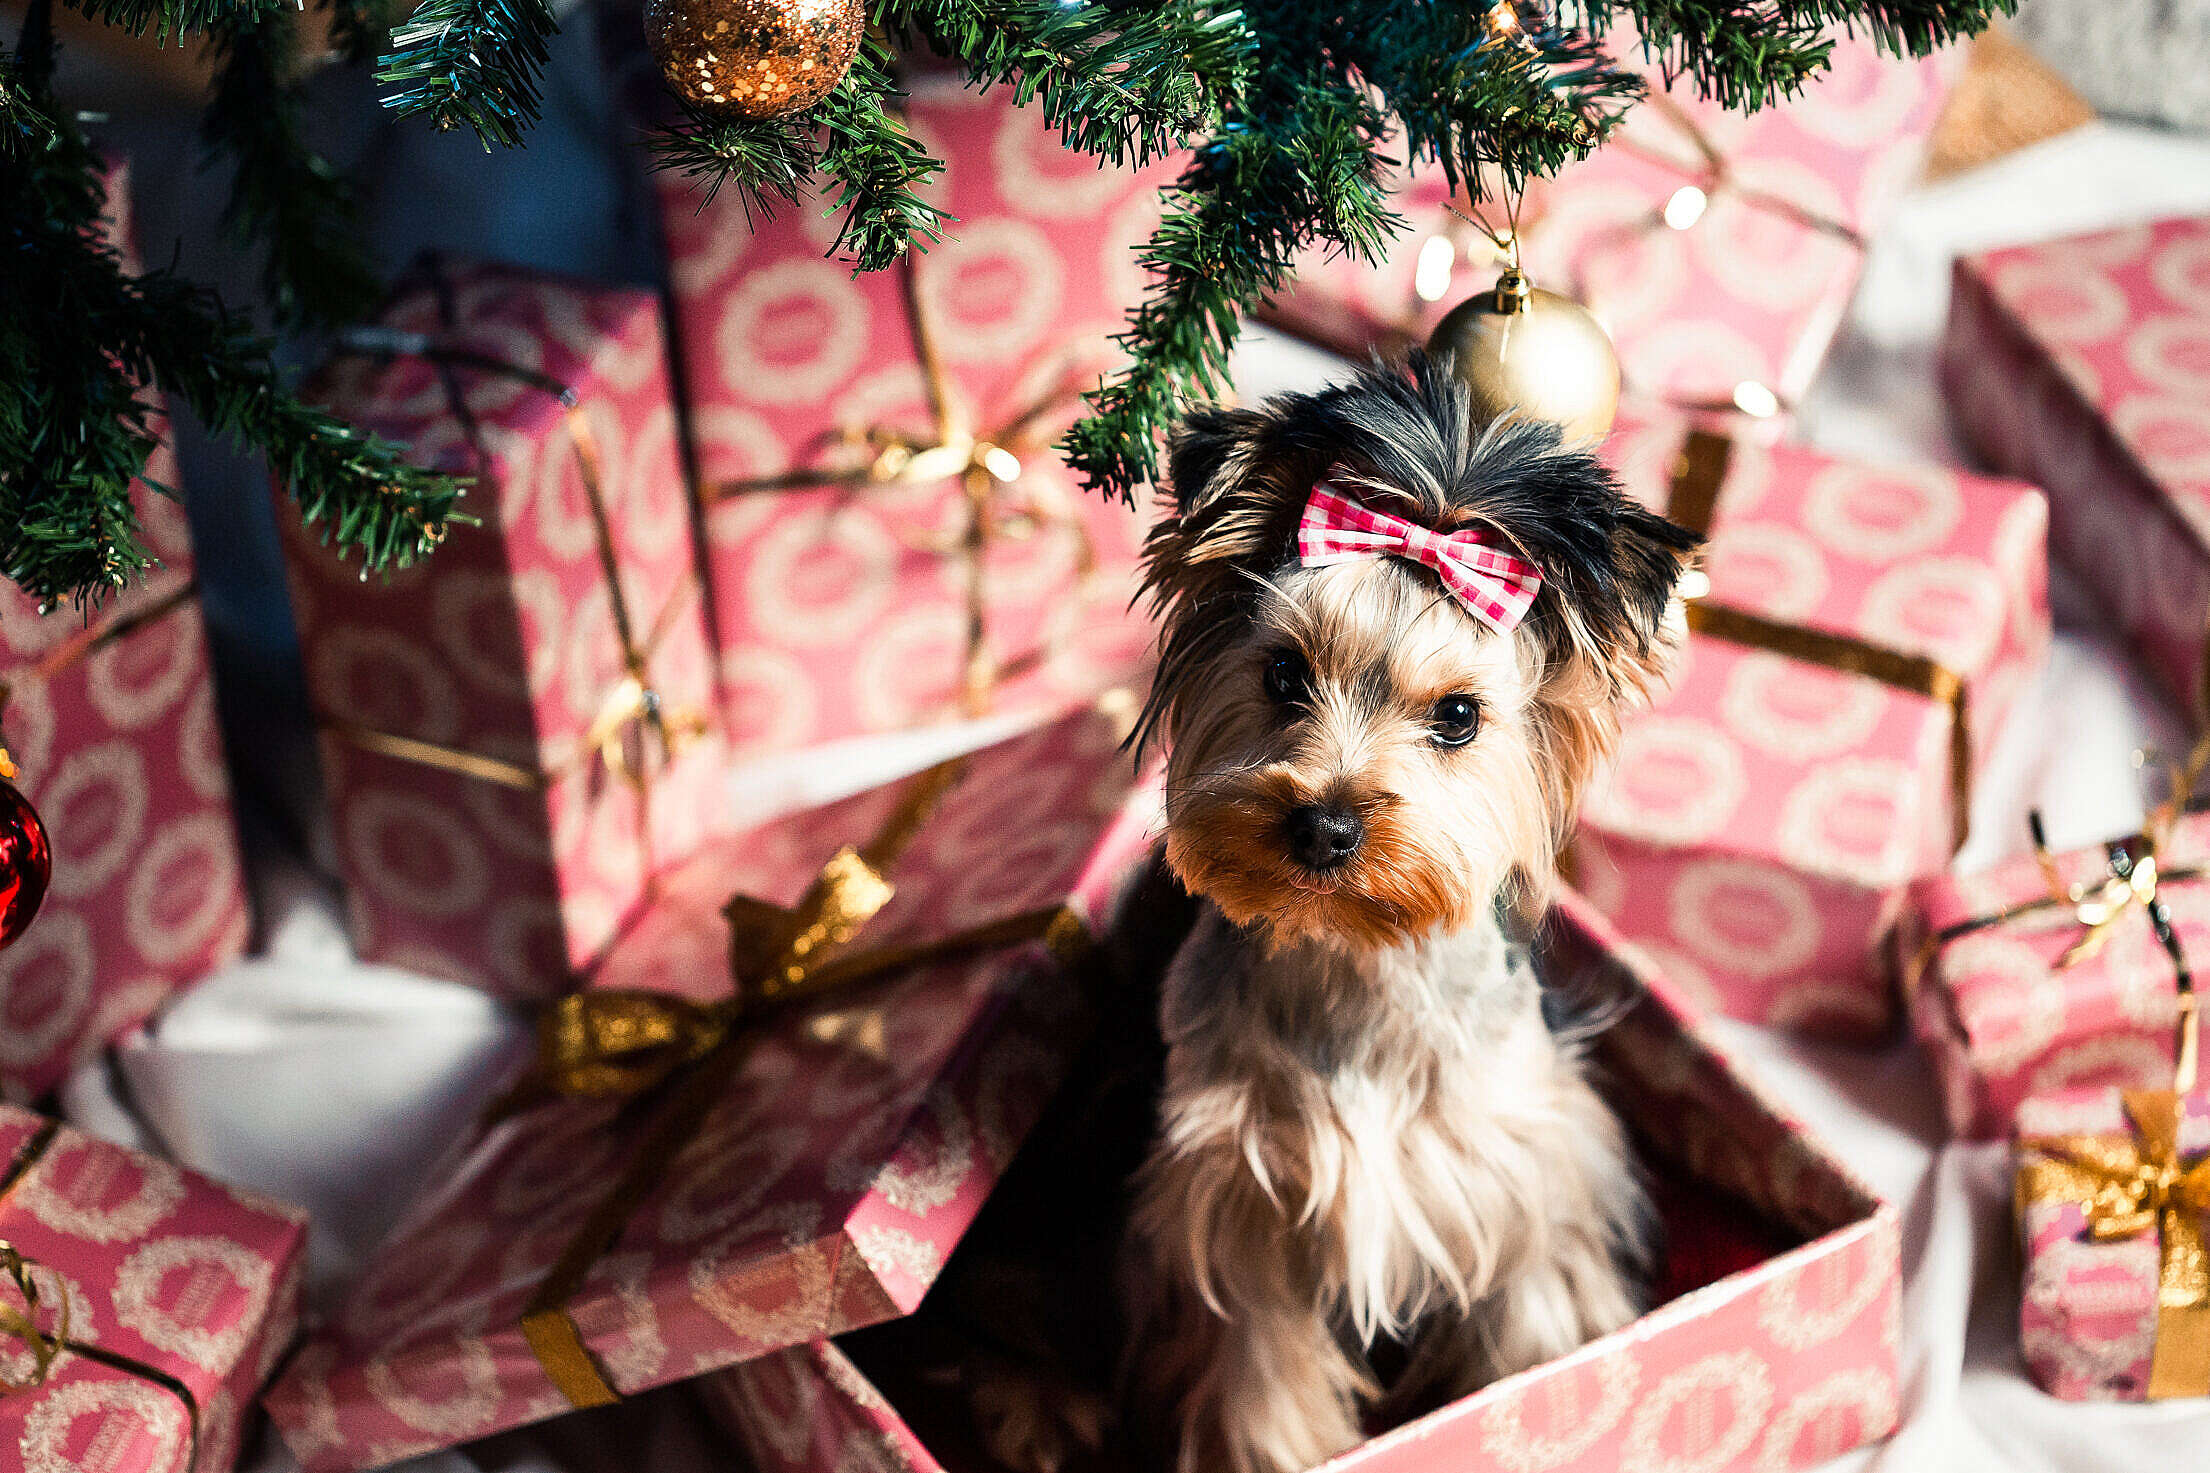 Cute Puppy as a Christmas Present Surprise Free Stock Photo